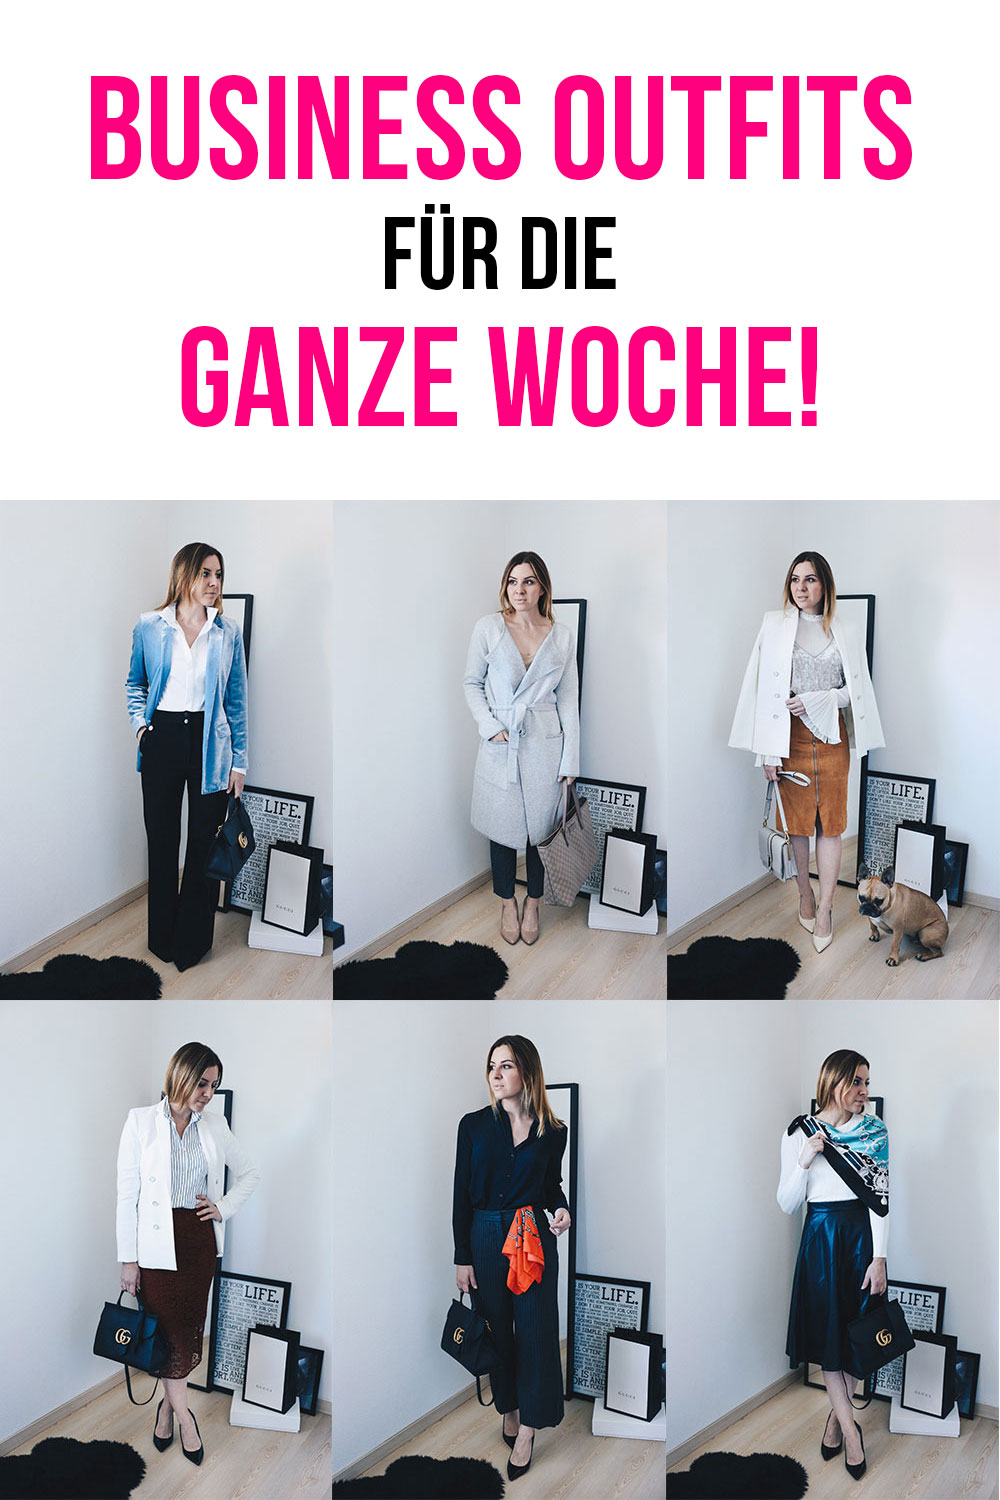 Office-Chic Fashion Diary, Business Outfits für die ganze Woche, Büro Outfits, Business Looks, Modeblog, Fashionblog, whoismocca.com